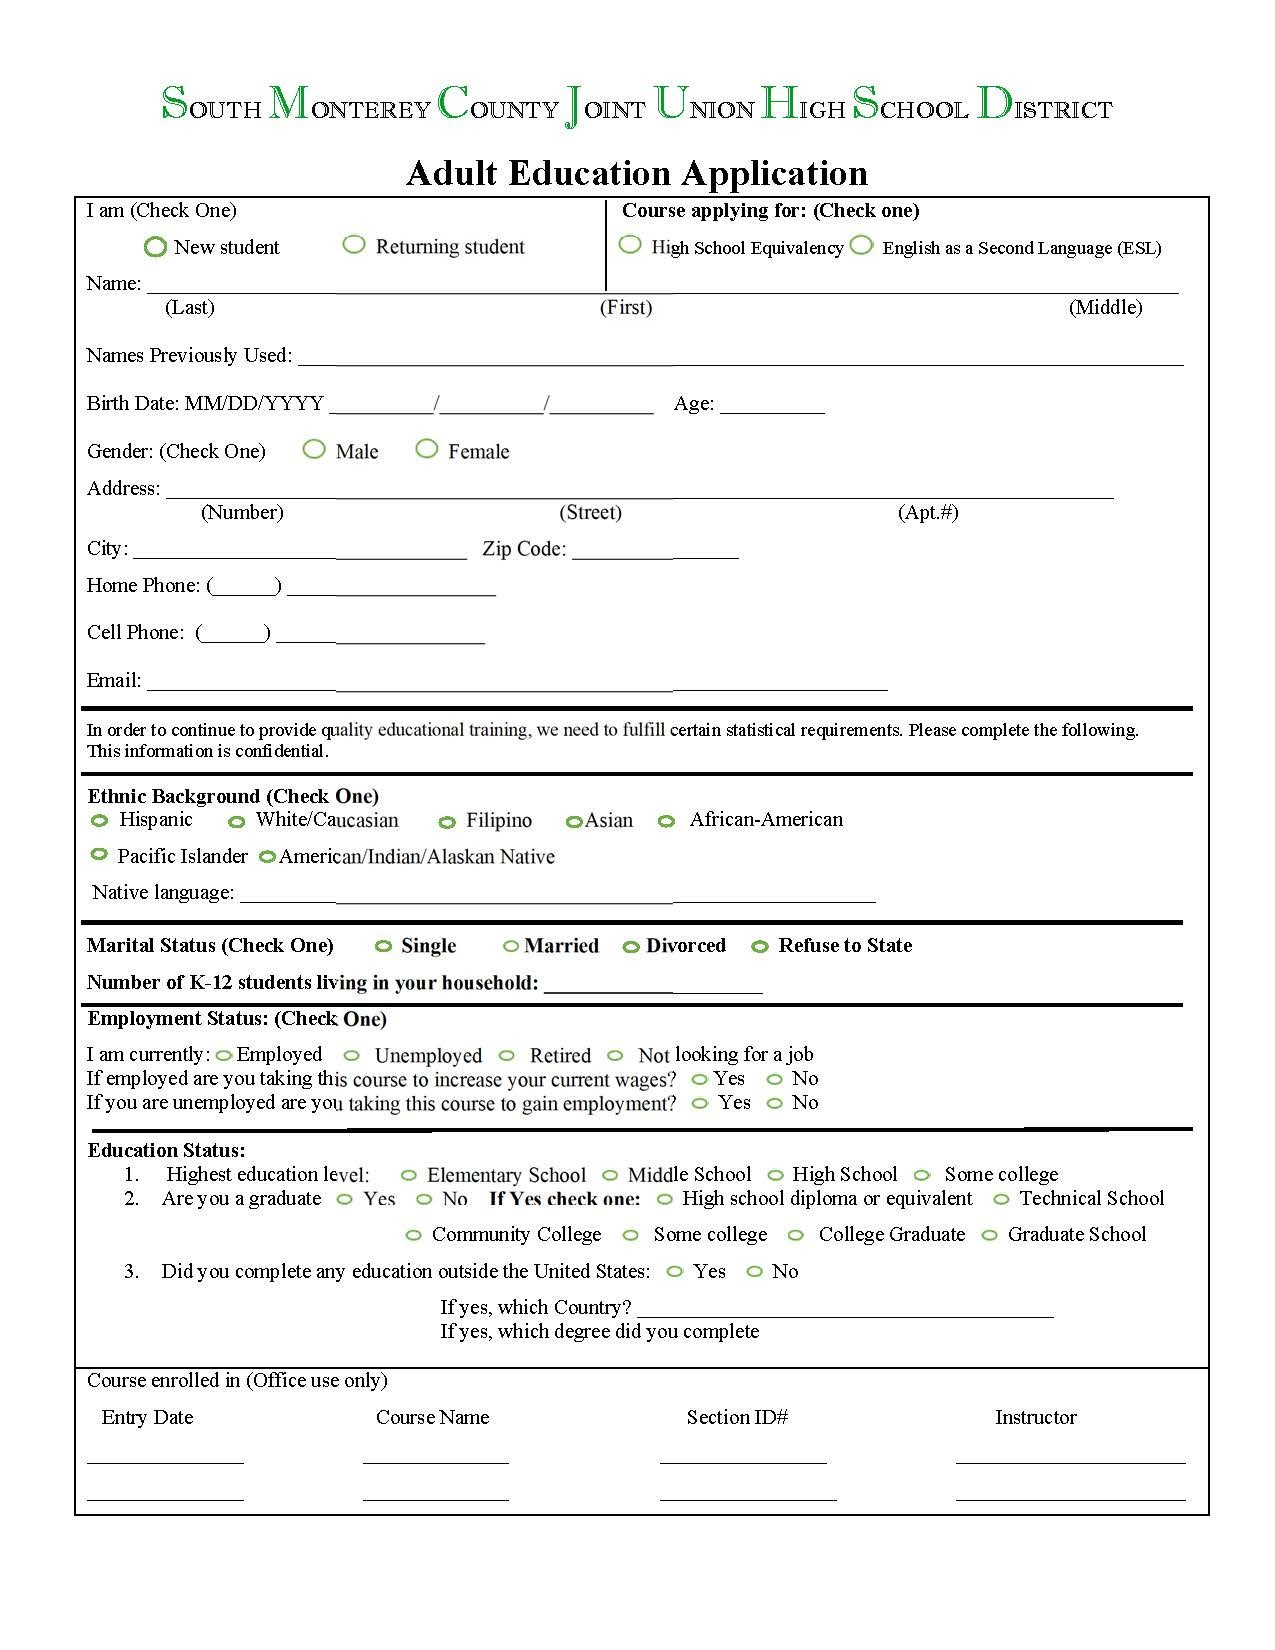 Adult Ed Application